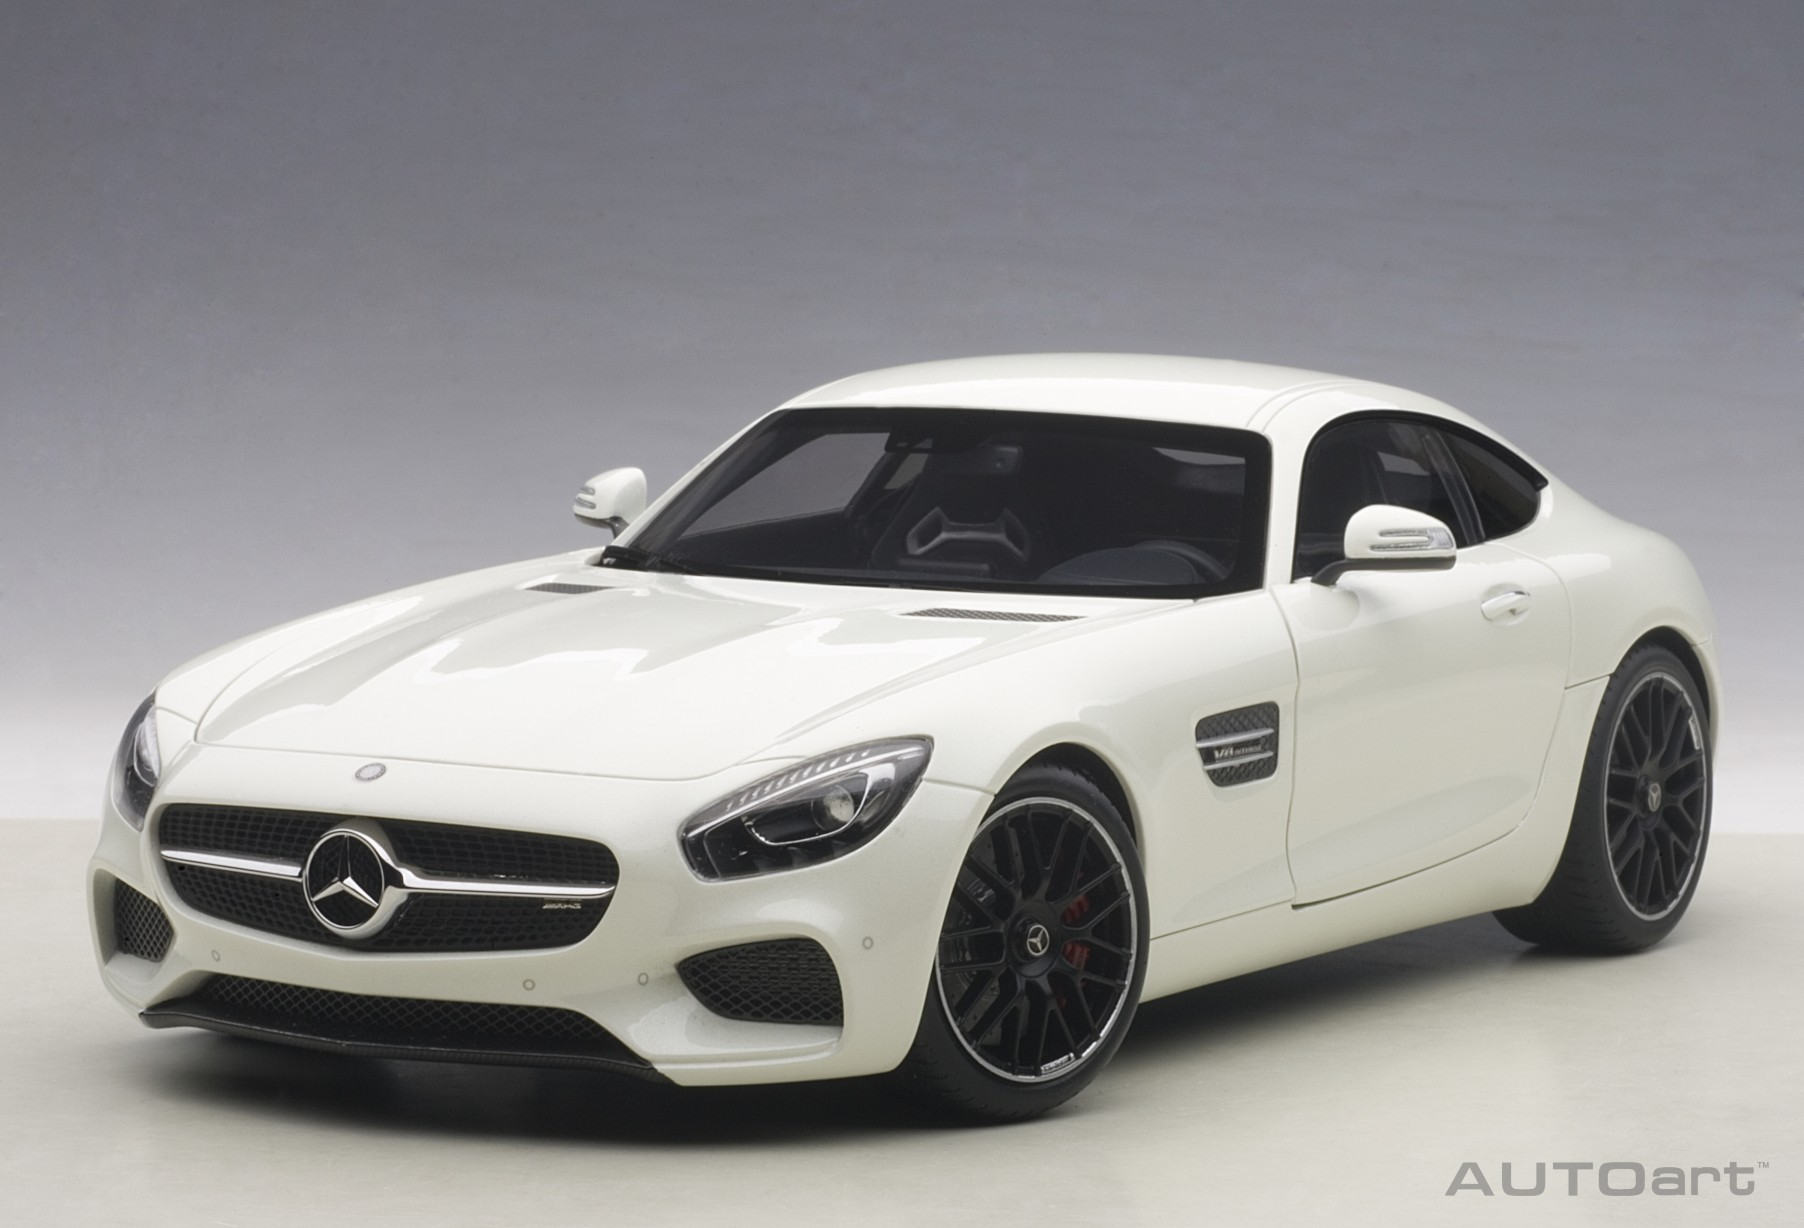 76311 mercedes benz amg gt s weiss 1 18 autoart nur eur. Black Bedroom Furniture Sets. Home Design Ideas